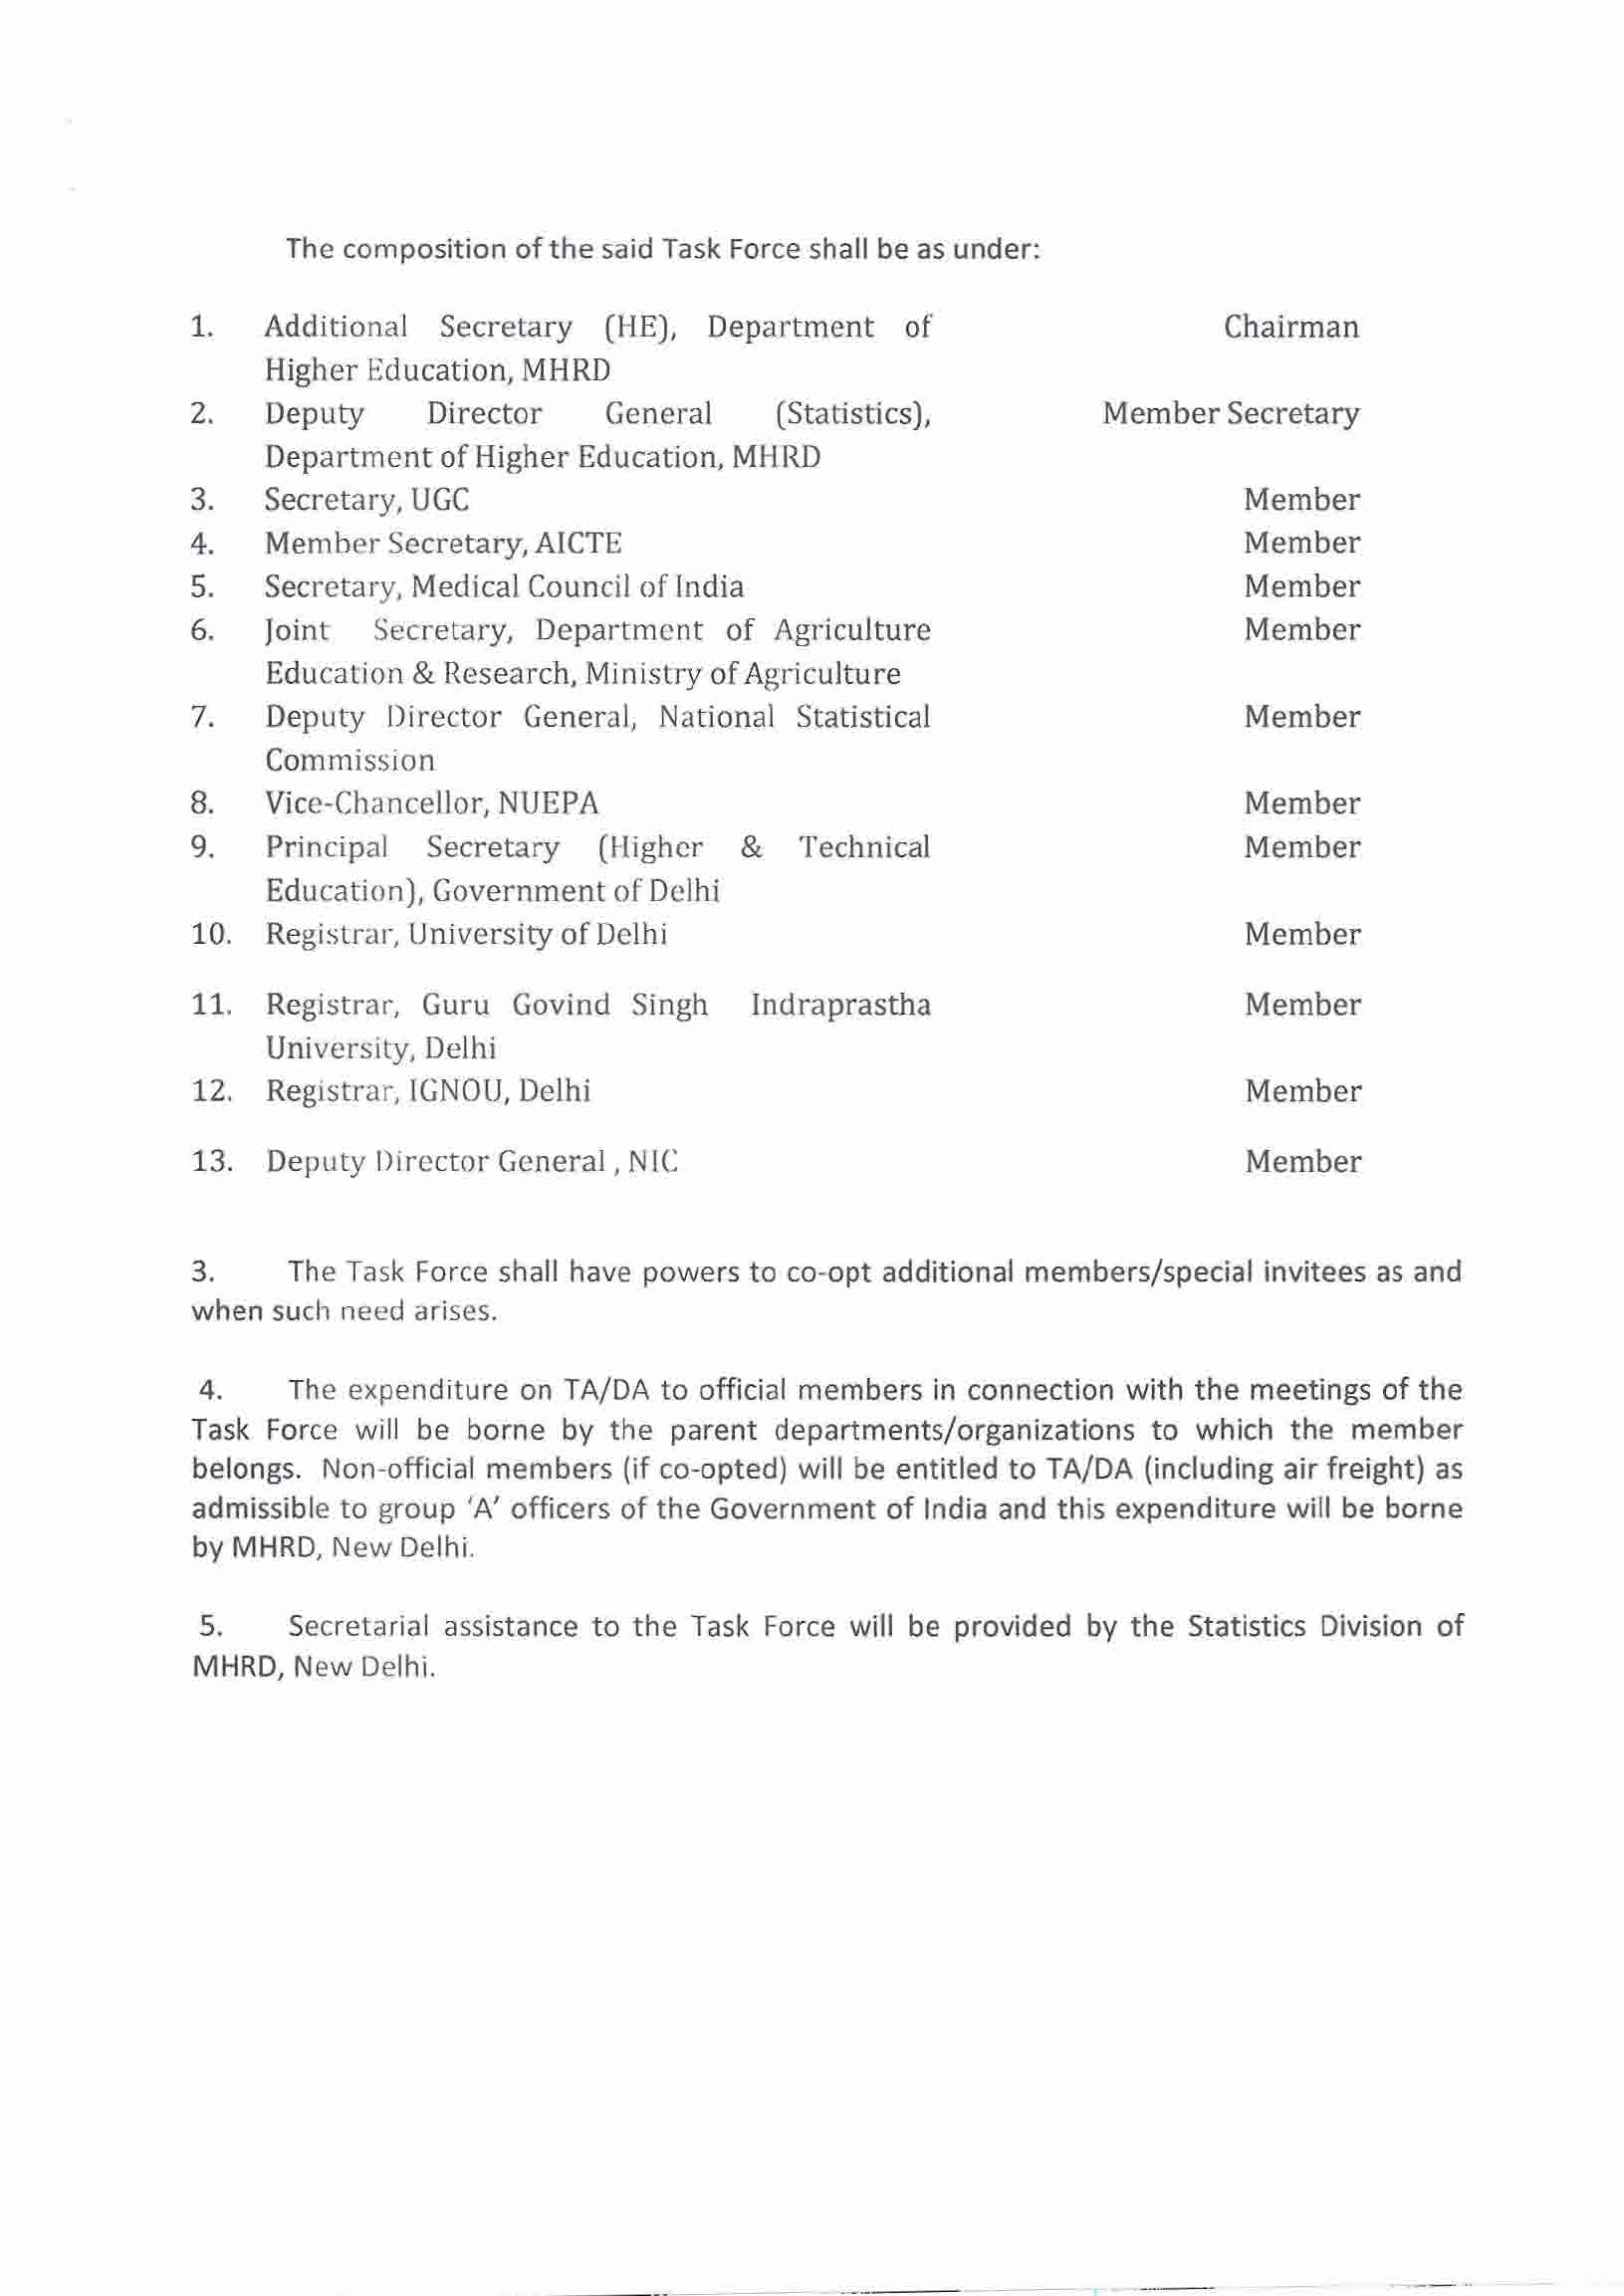 The composition of the said Task Force shall be as under: Additional Secretary (HE], Department of Chairman Higher Education, MHRD Deputy Director General (Statistics), Member Secretary Department of